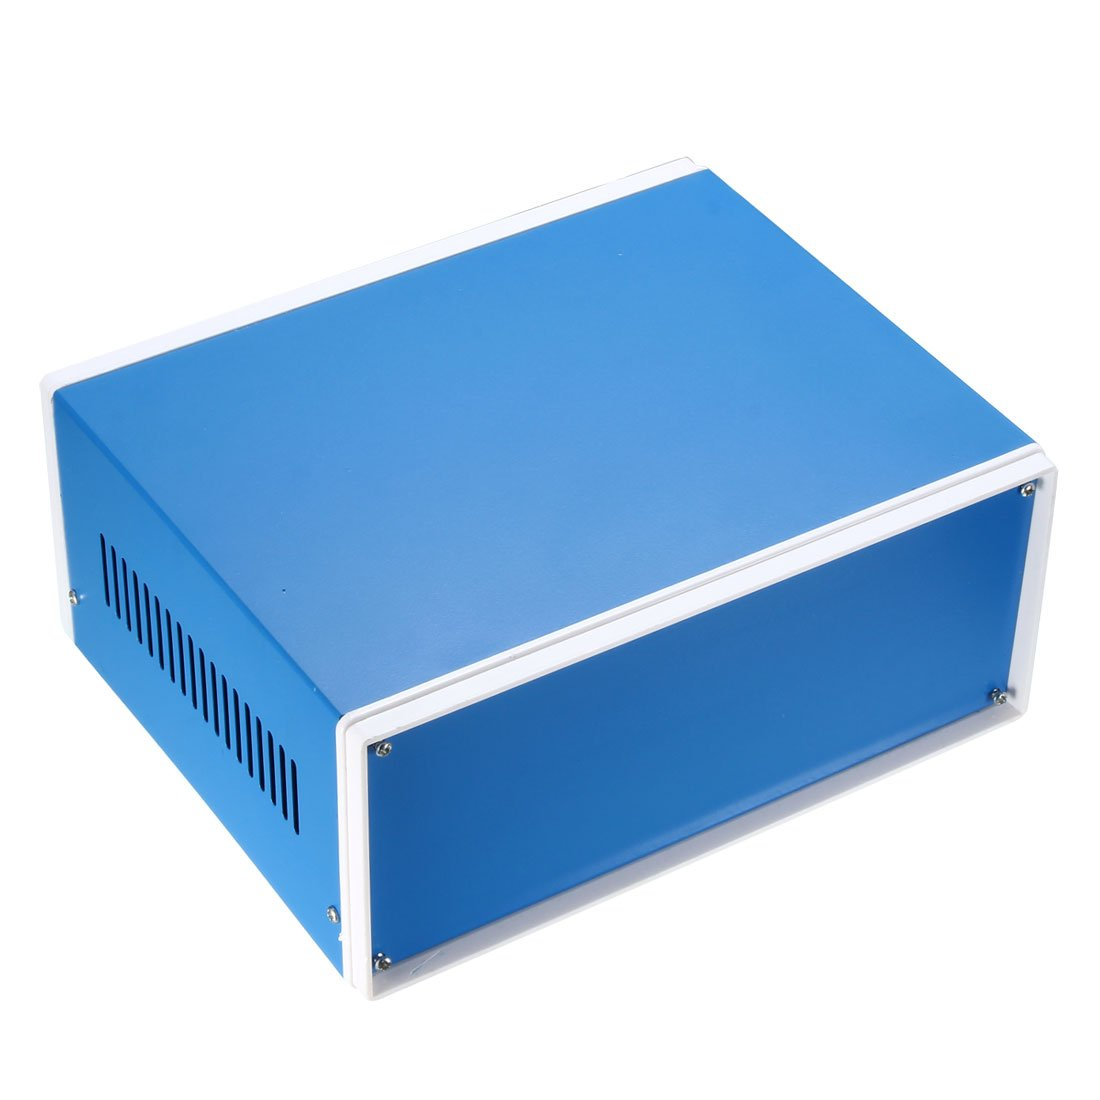 uxcell 230 x 185 x 100 Electronic Iron DIY Junction Box Enclosure Case Blue